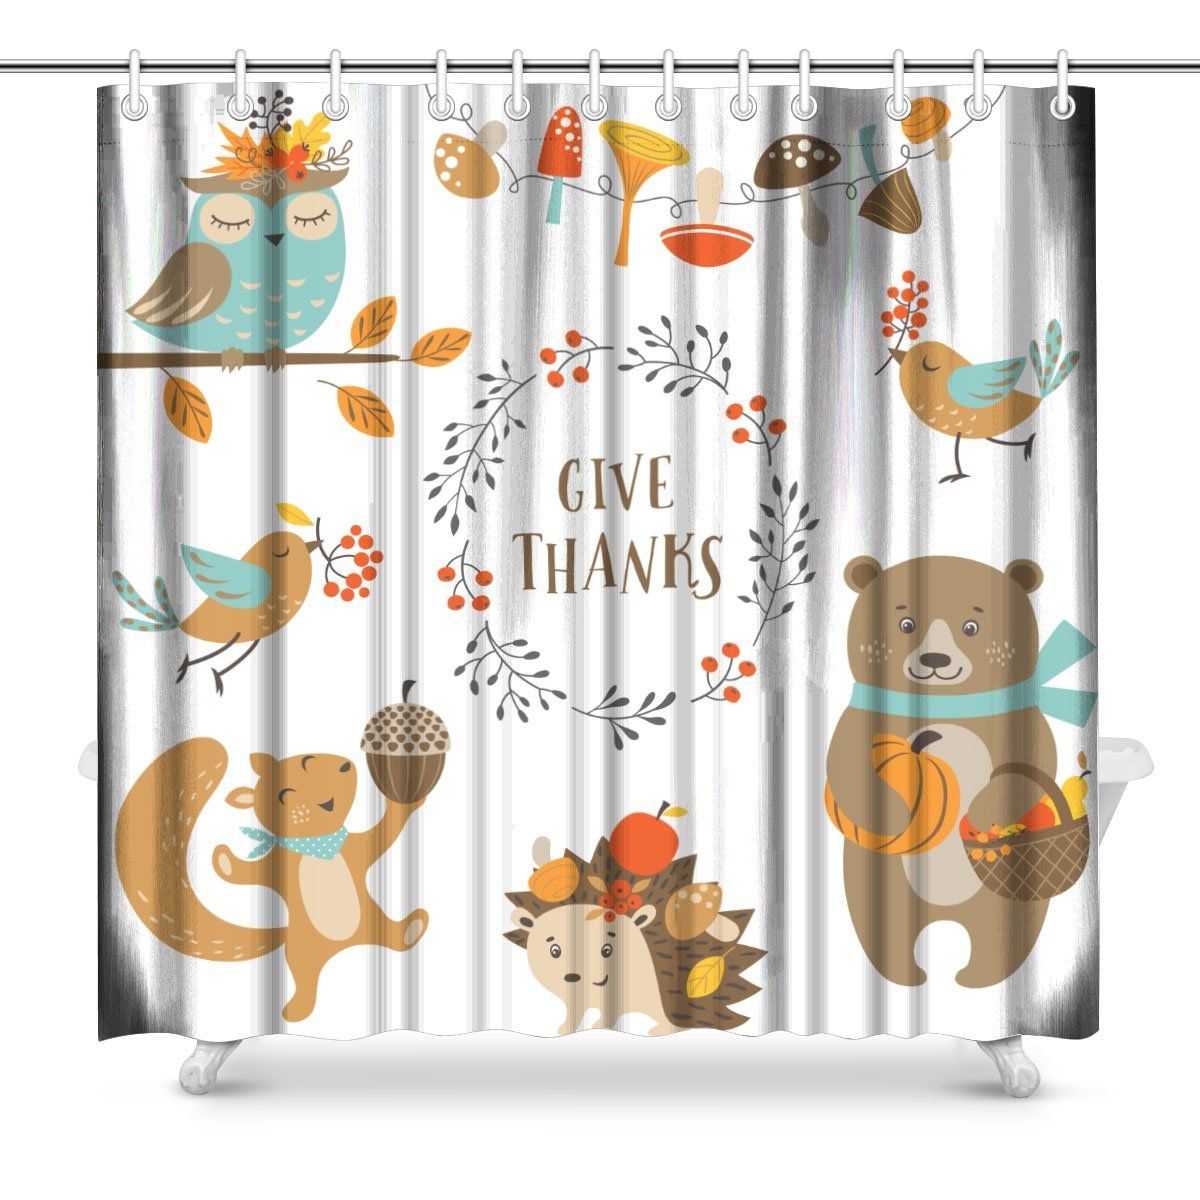 Aplysia Cute Woodland Animals For Autumn And Thanksgiving Polyester Fabric Bathroom Shower Curtain Set With Hooks